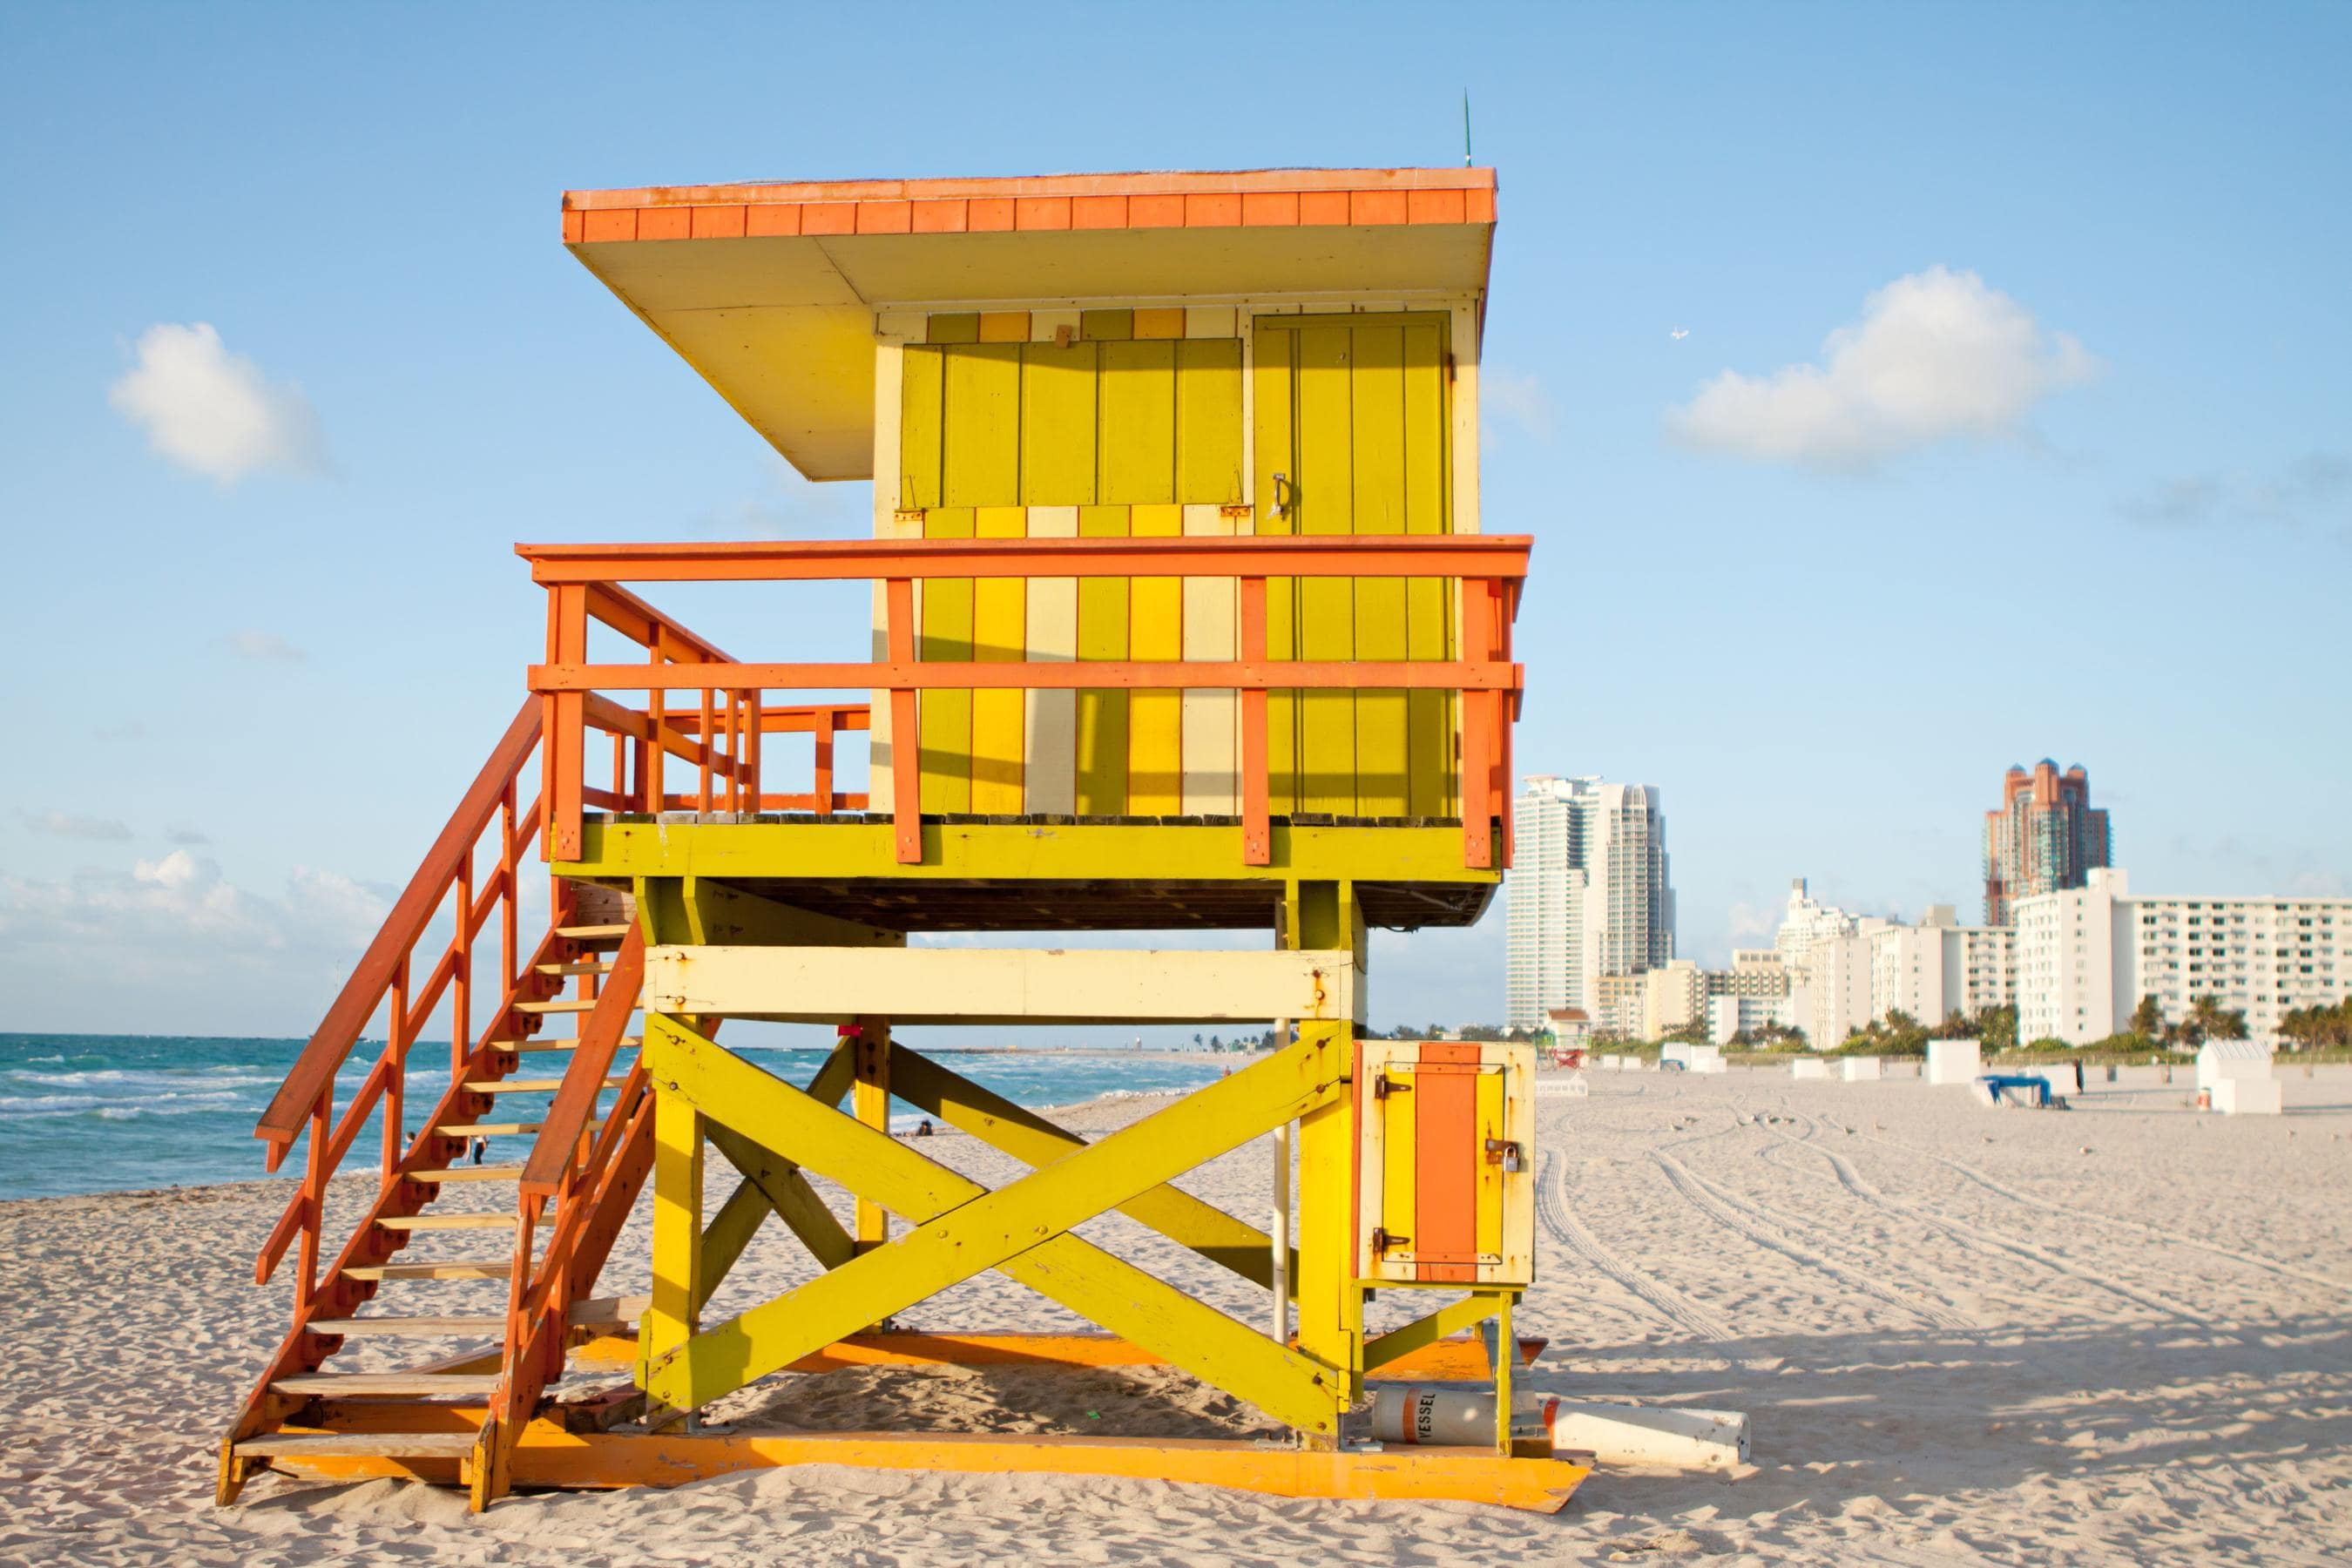 02_Miami-Best-Beaches-8th-Street_Shutterstock_136656746